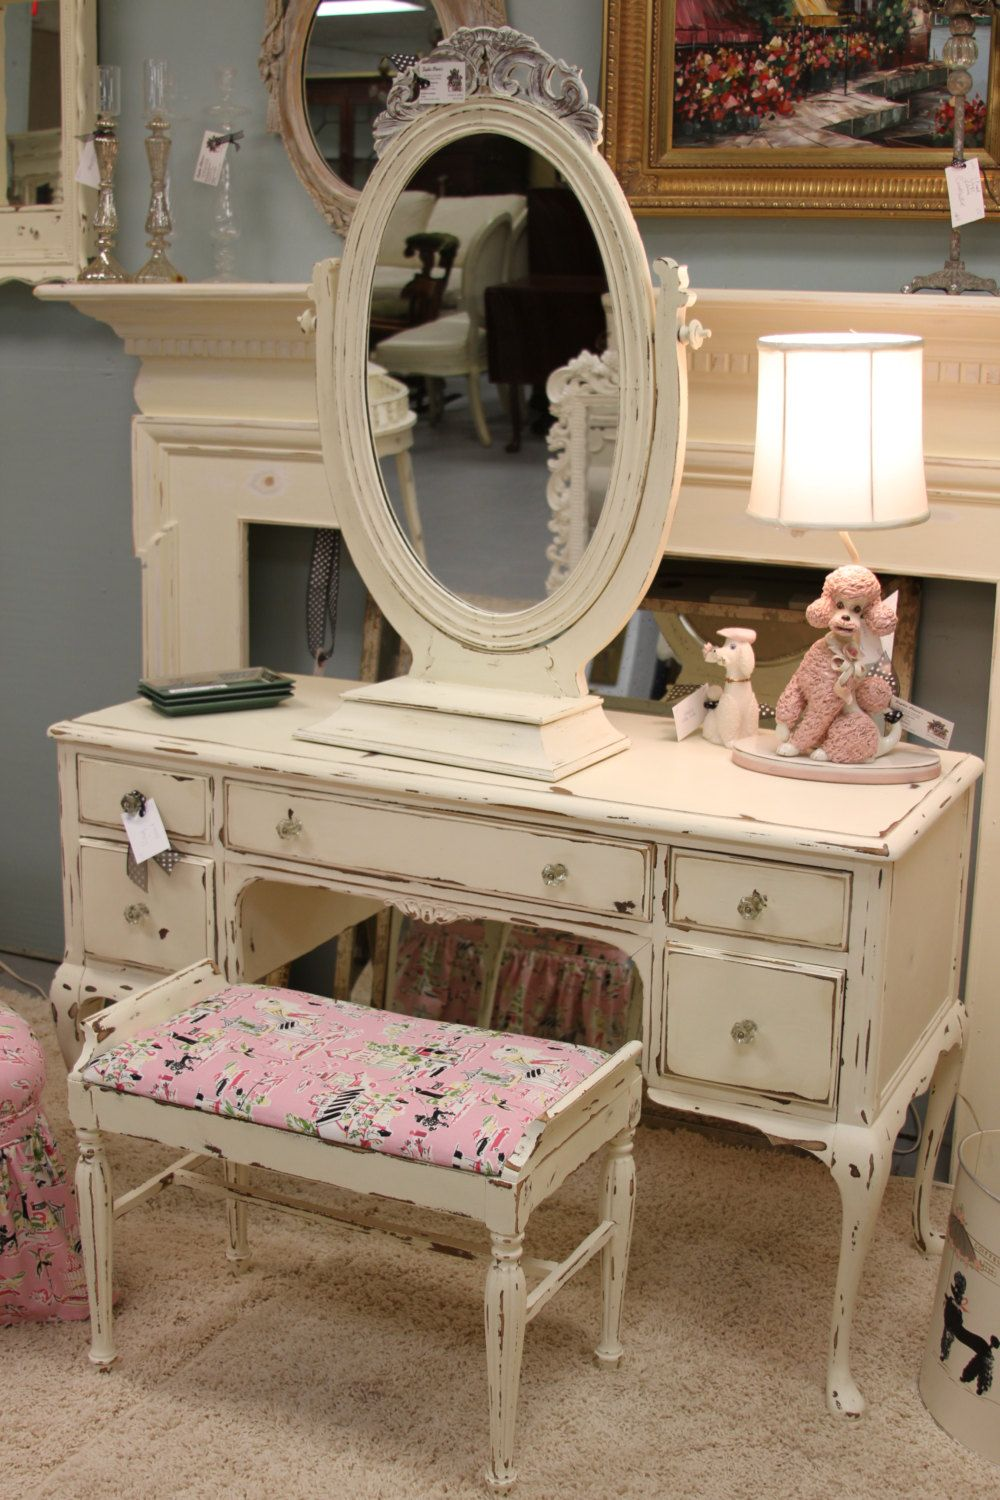 Adorable Shabby Chic Distressed Vanity Set Wih Pink Upholstery 72500 Via Etsy